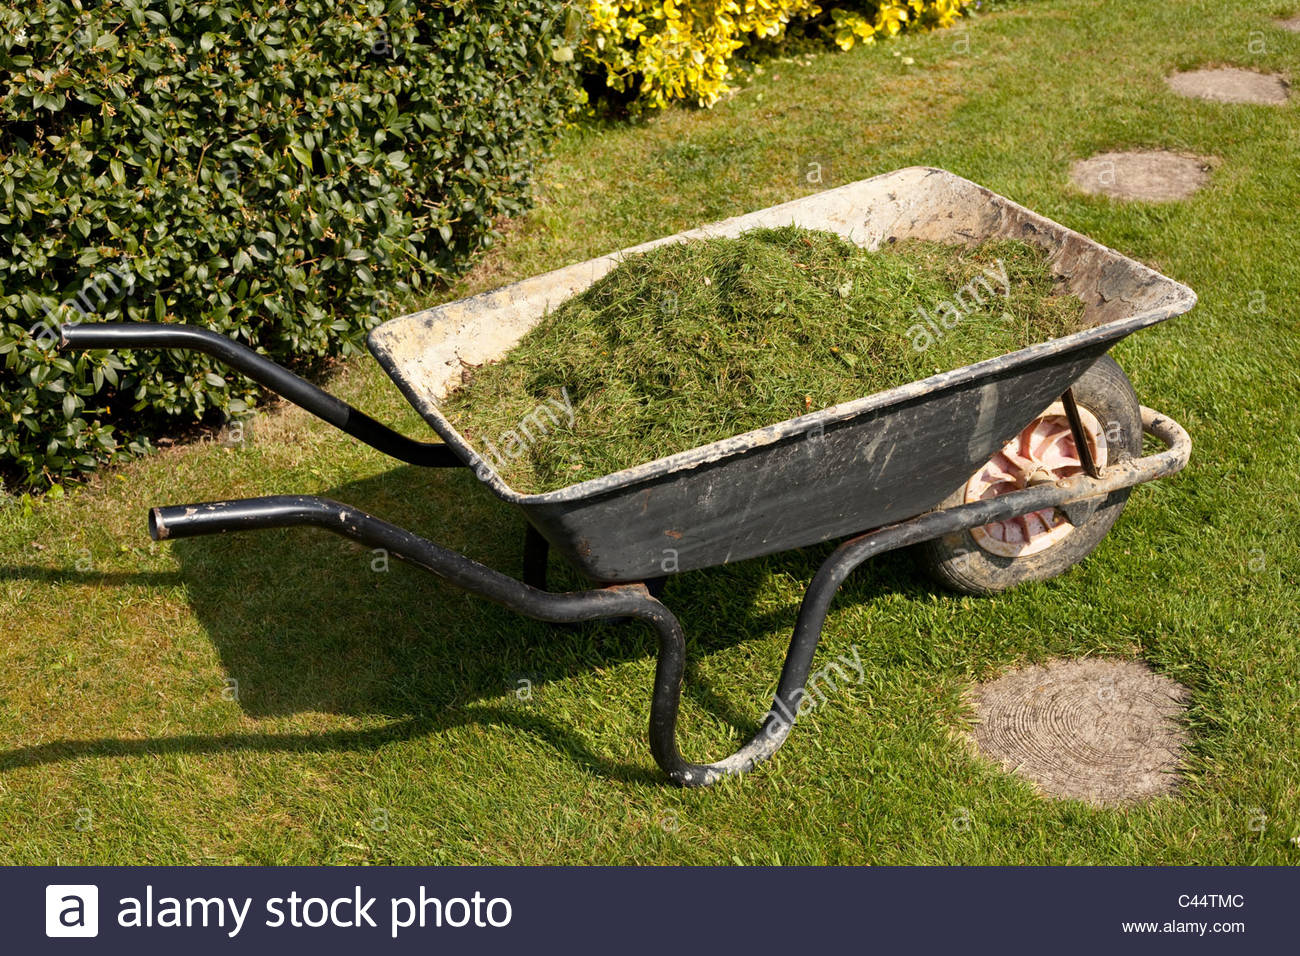 Wheelbarrow full of grass clippings - Stock Image